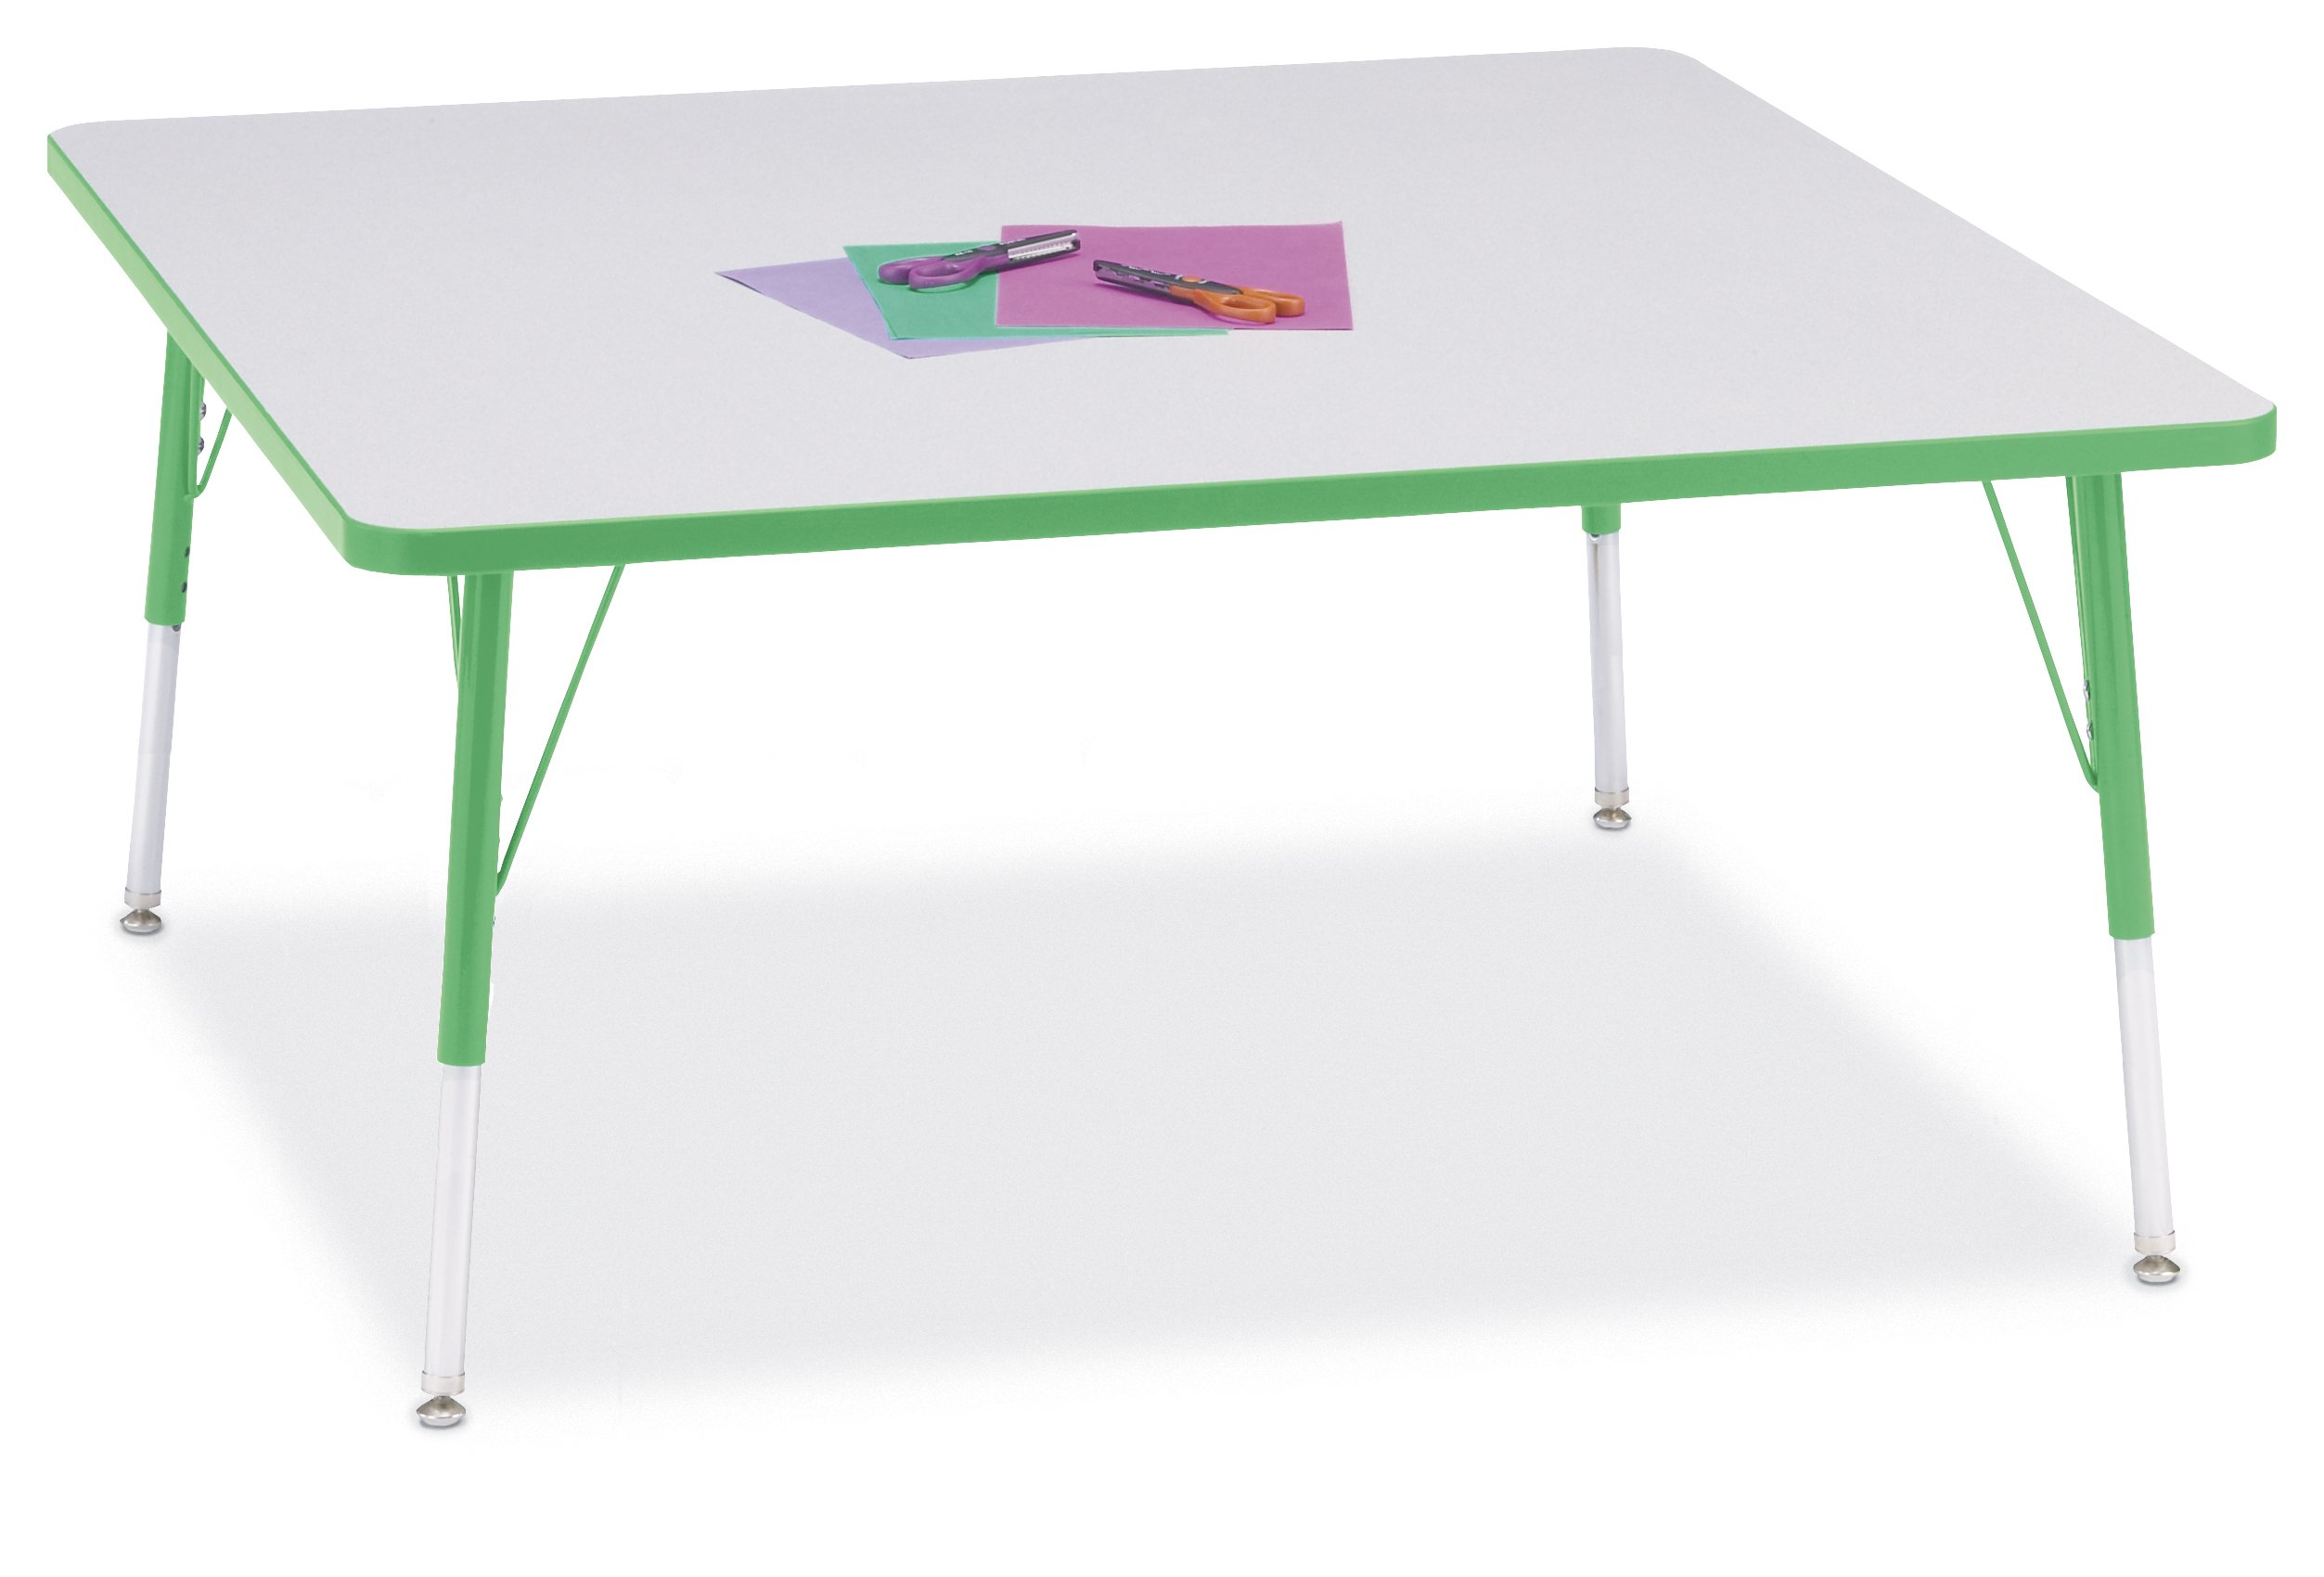 Berries 6418JCA119 Square Activity Table, A-Height, 48'' x 48'', Gray/Green/Green